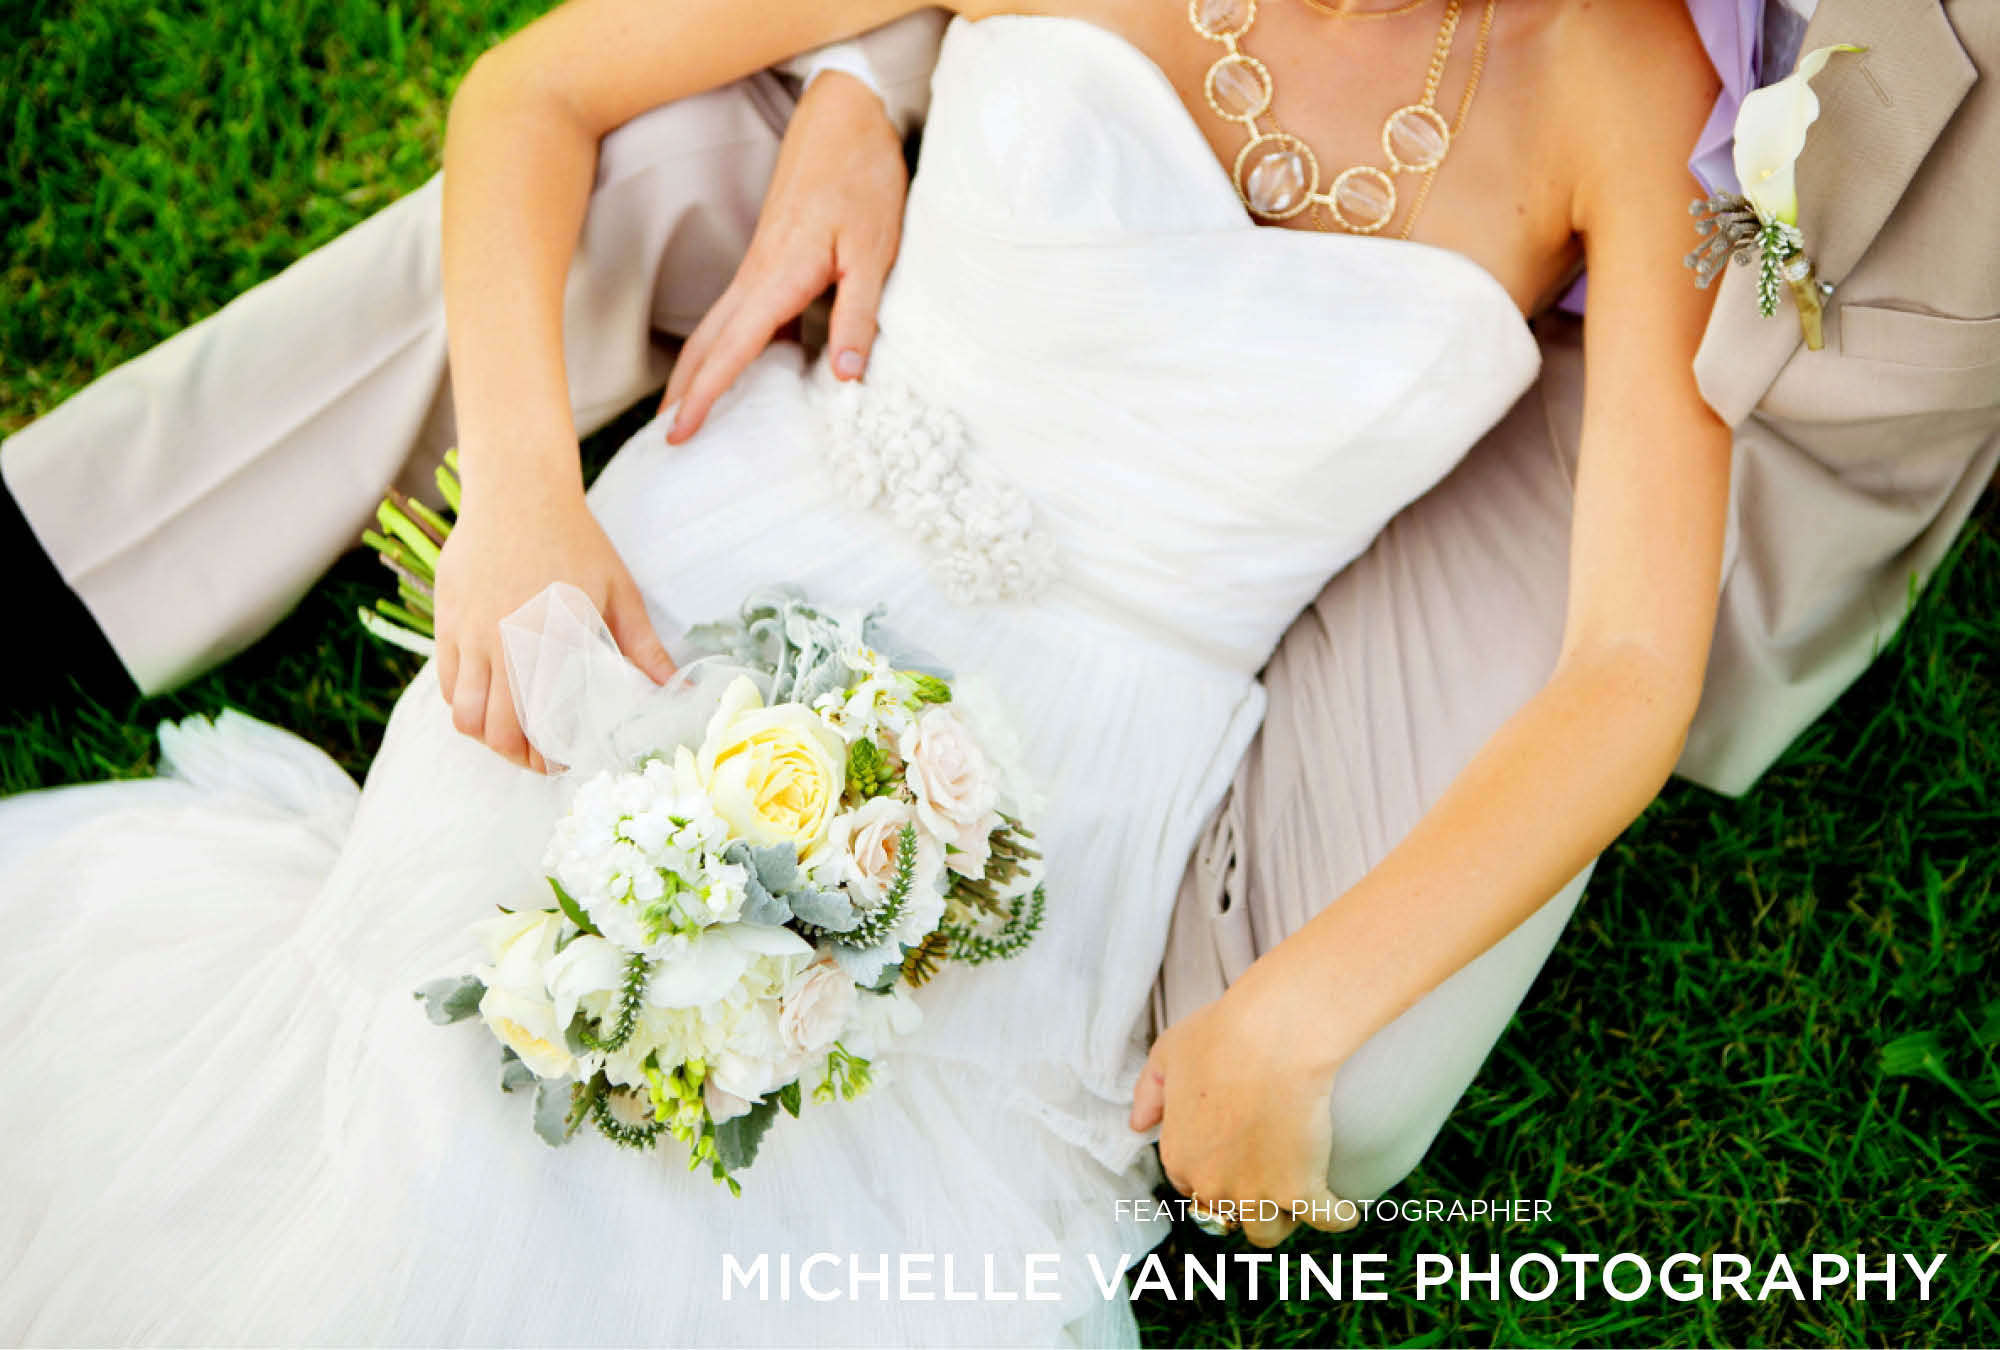 Michelle VanTine Photography